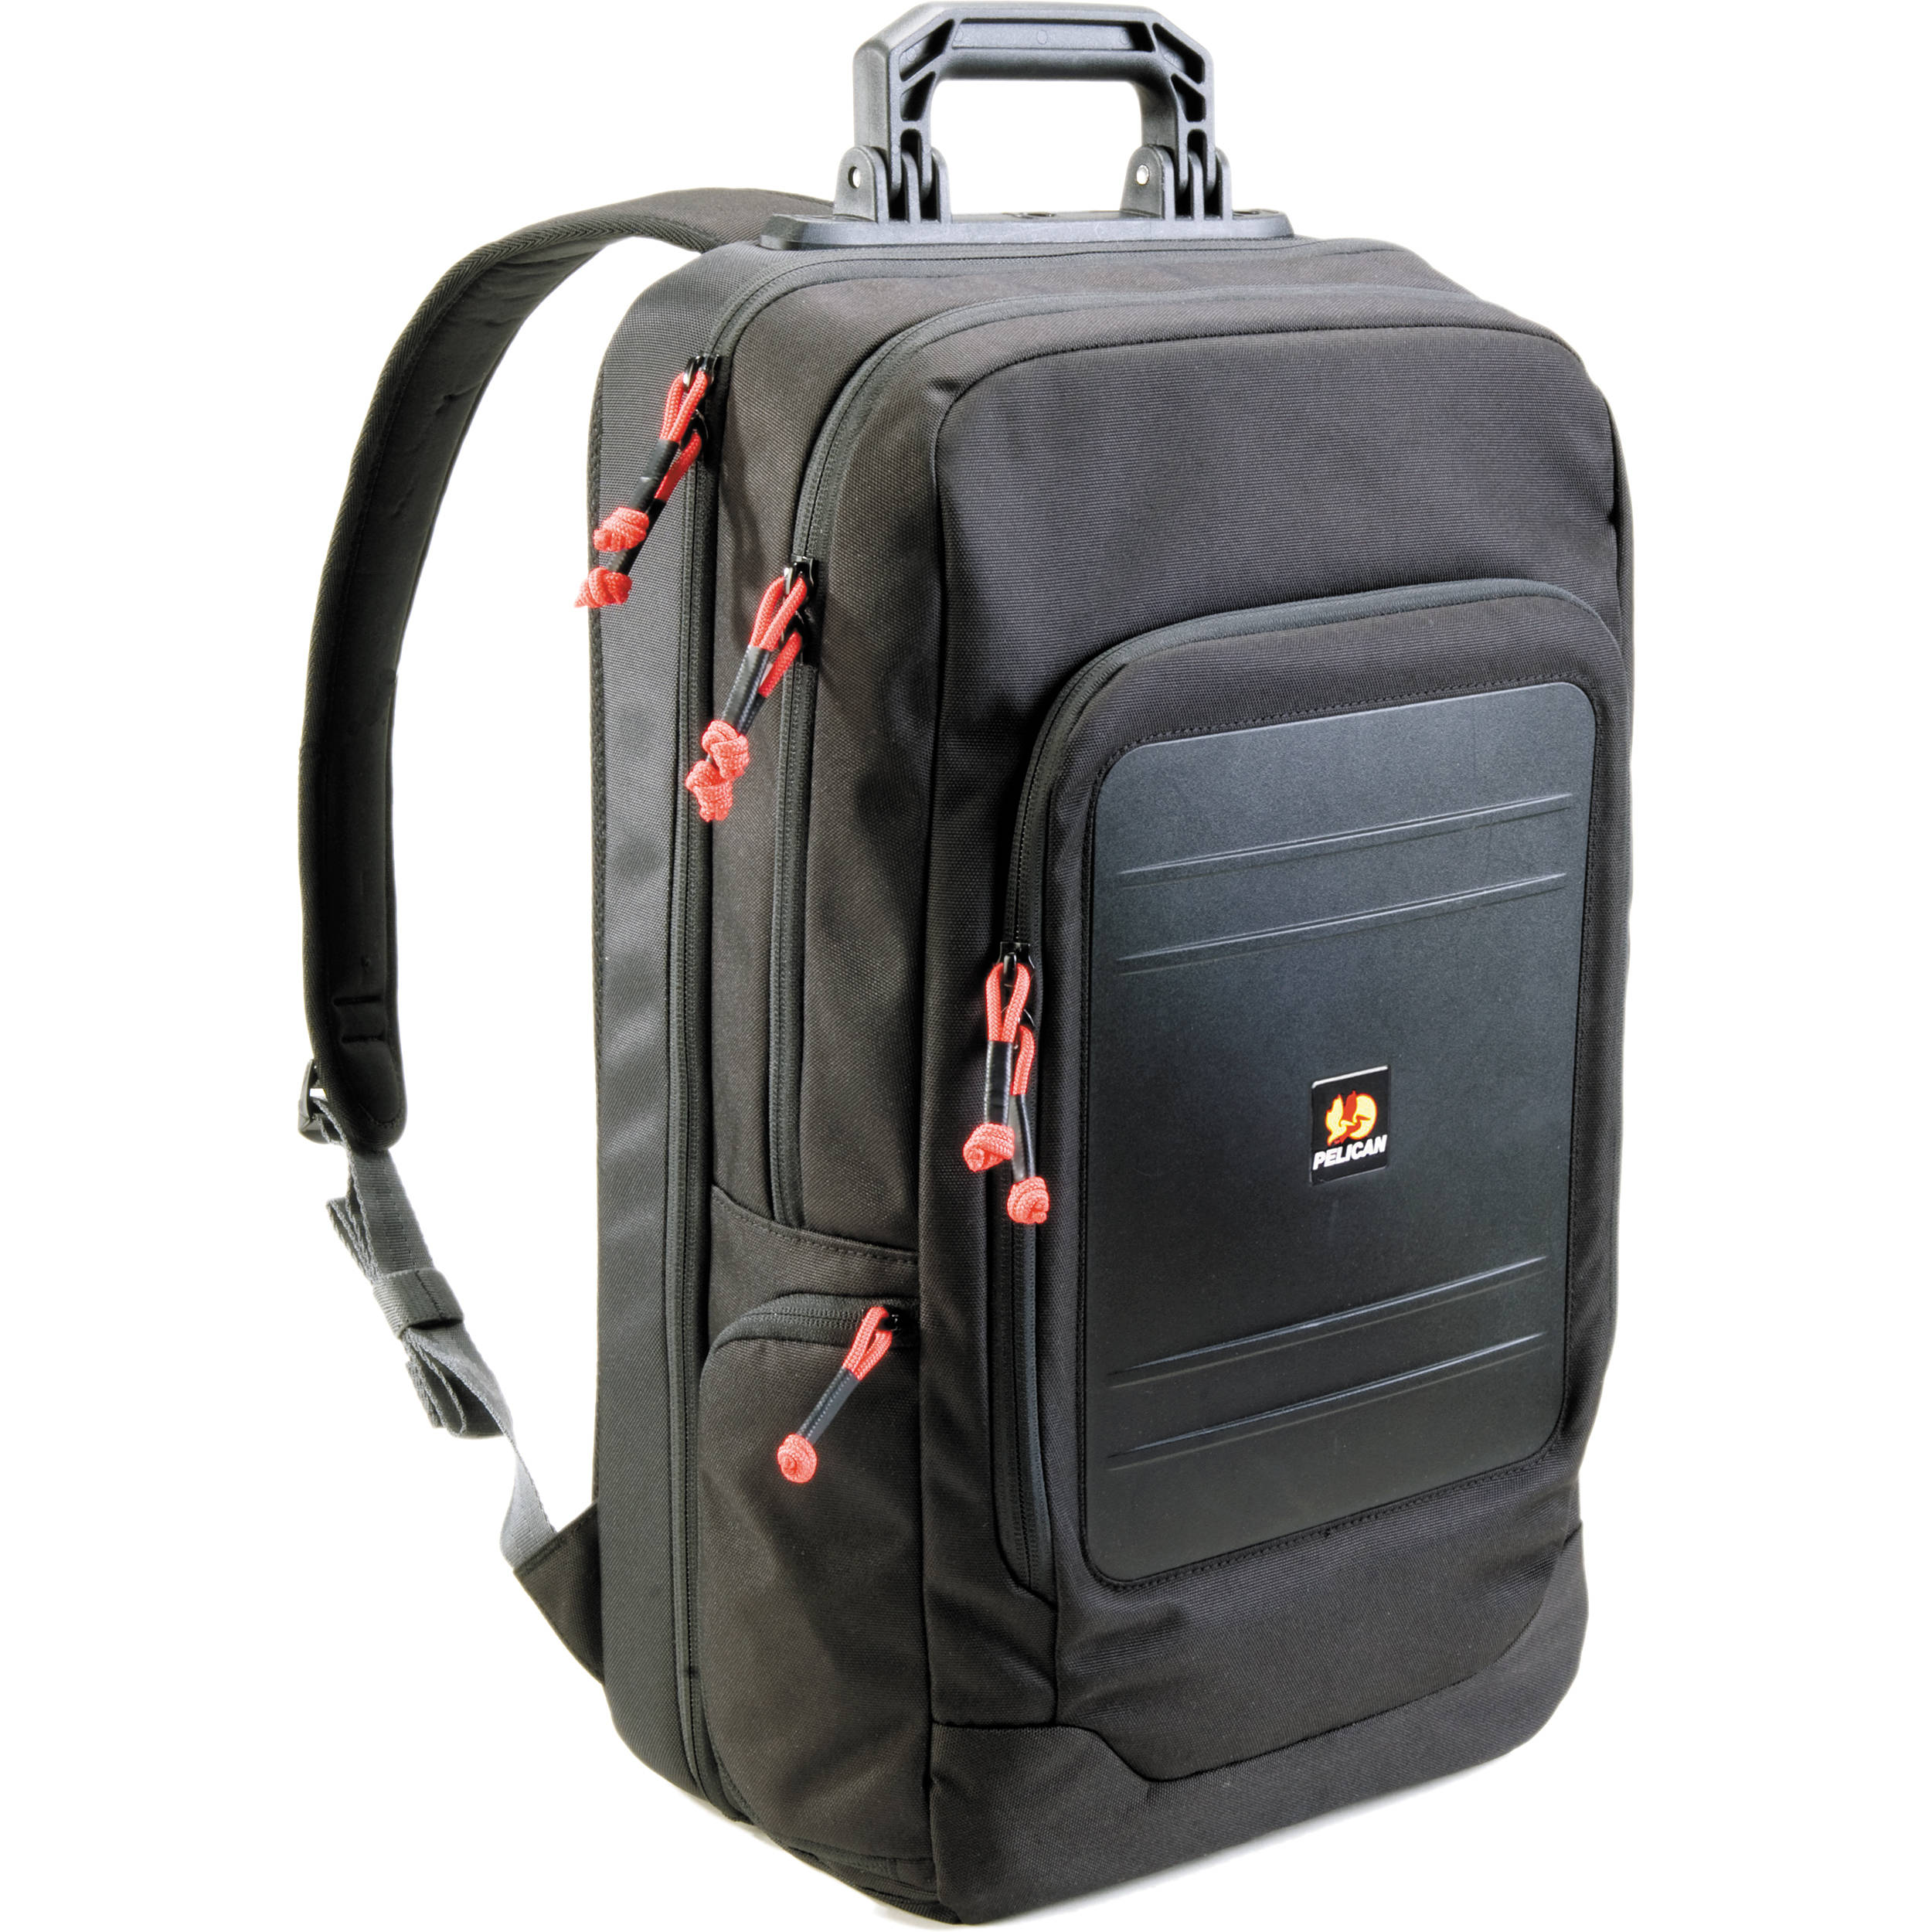 Pelican U105 Urban Lite Backpack with a Pocket 0U1050-0003-110